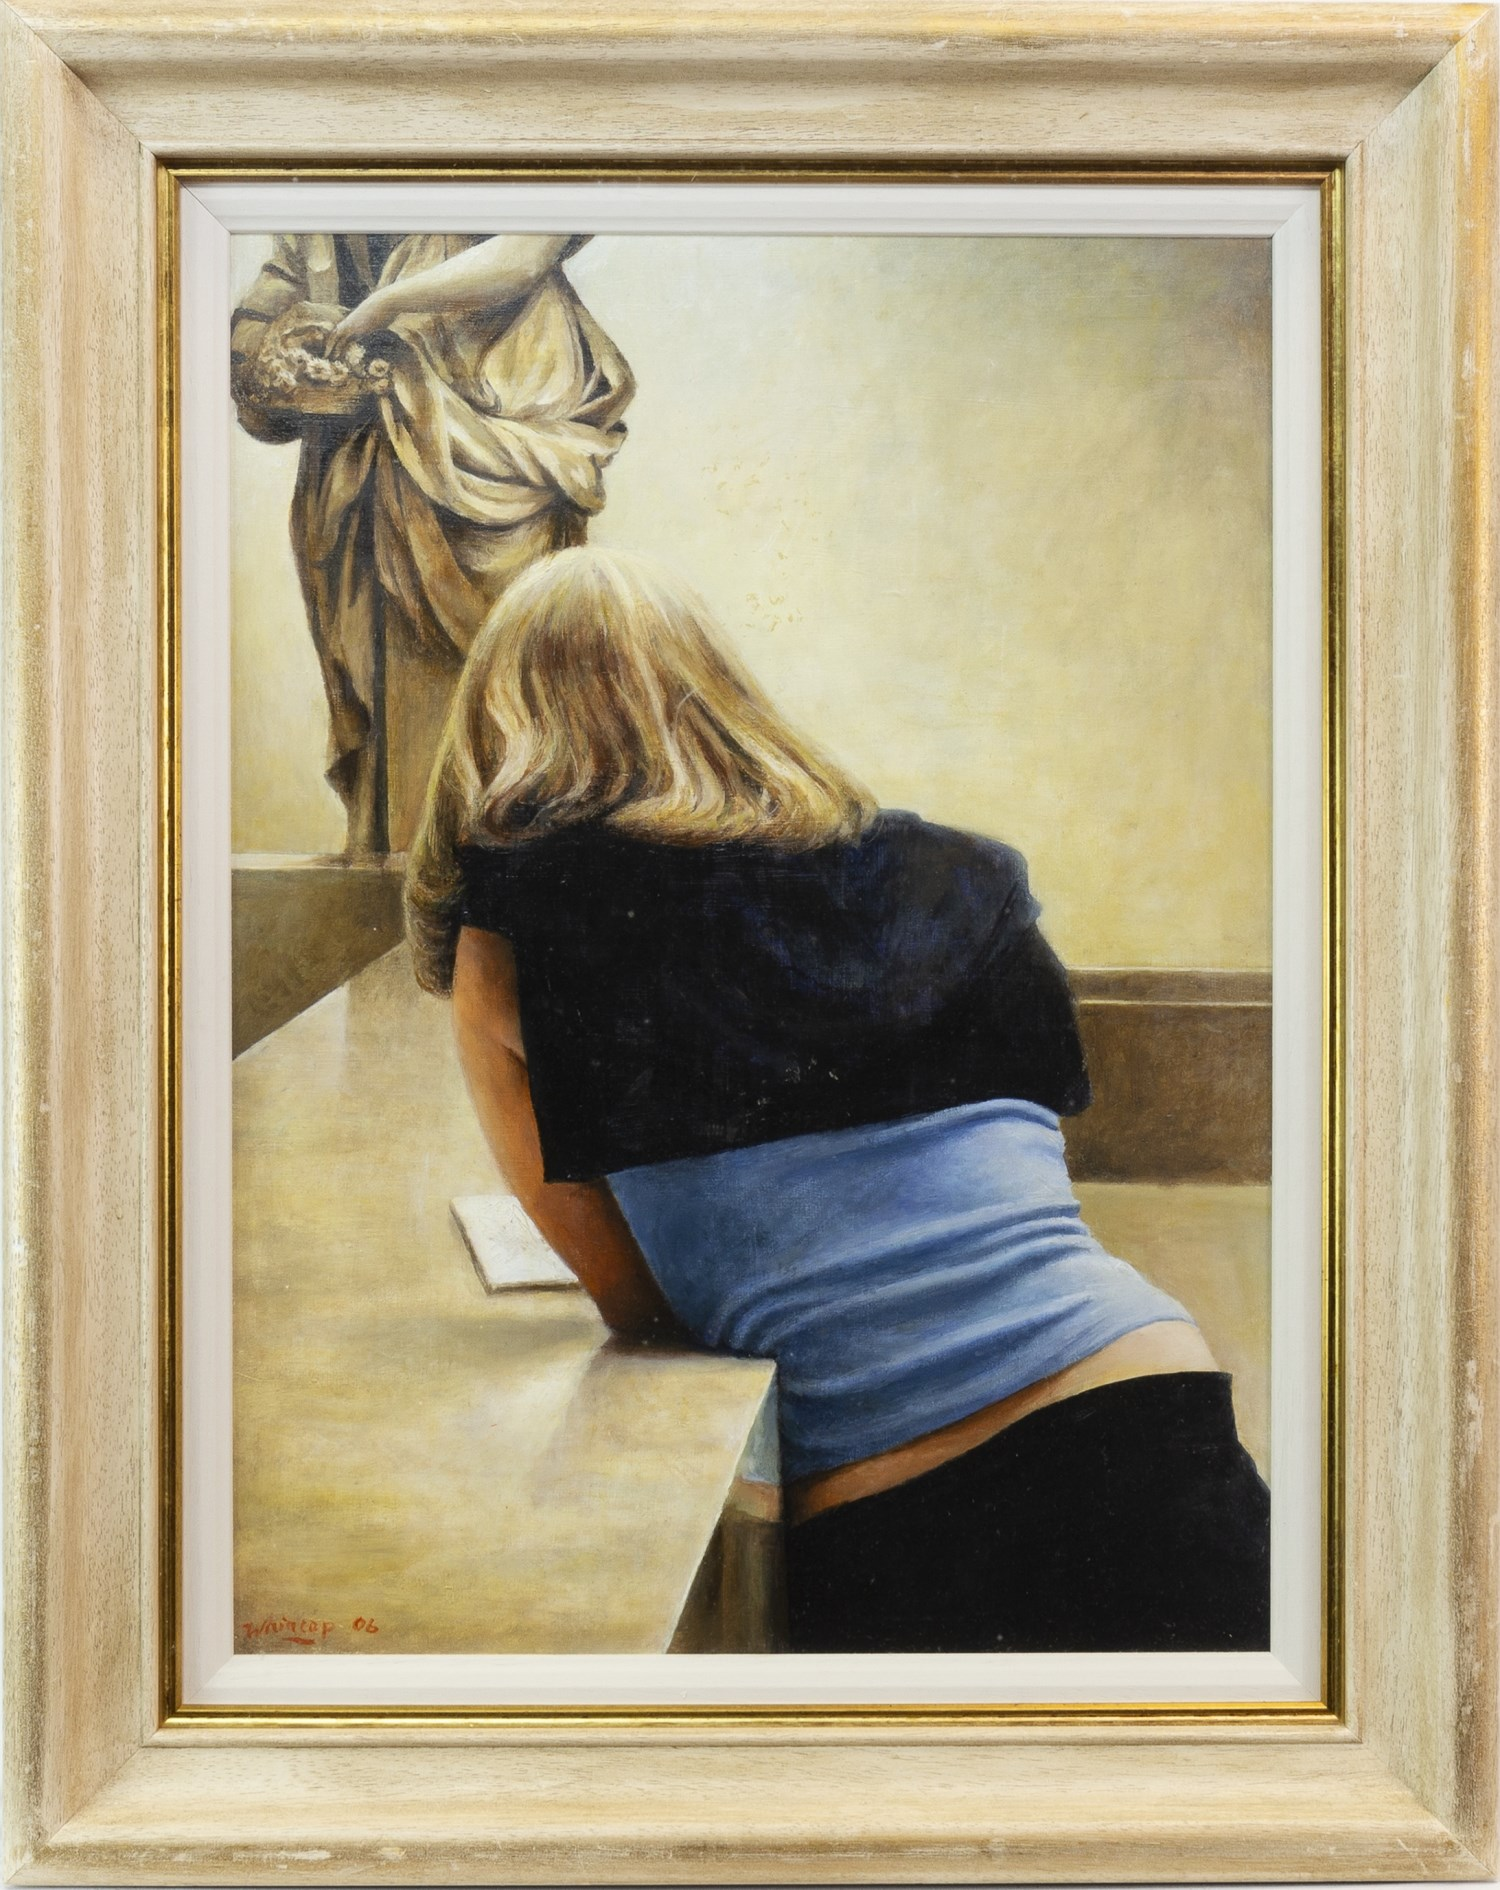 Lot 61 - PRIMAVERA, AN OIL ON CANVAS BOARD BY RICHARD WHINCOP